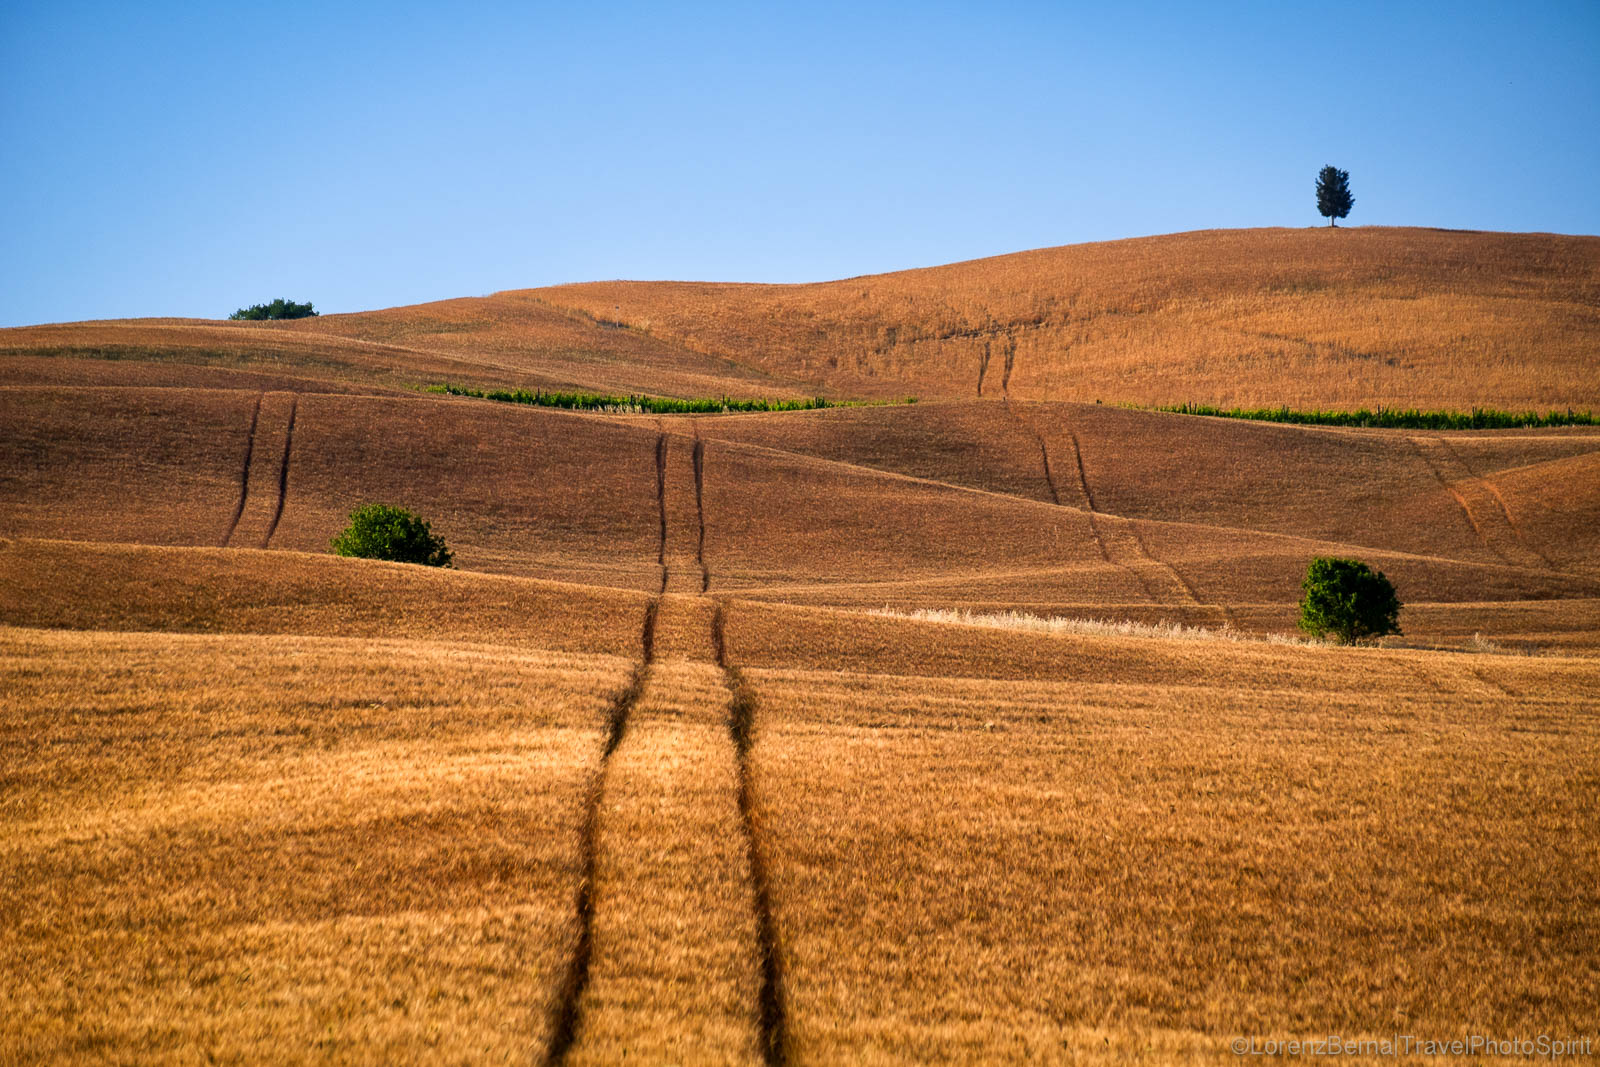 Fall colors on a wheat field, Tuscany, Italy